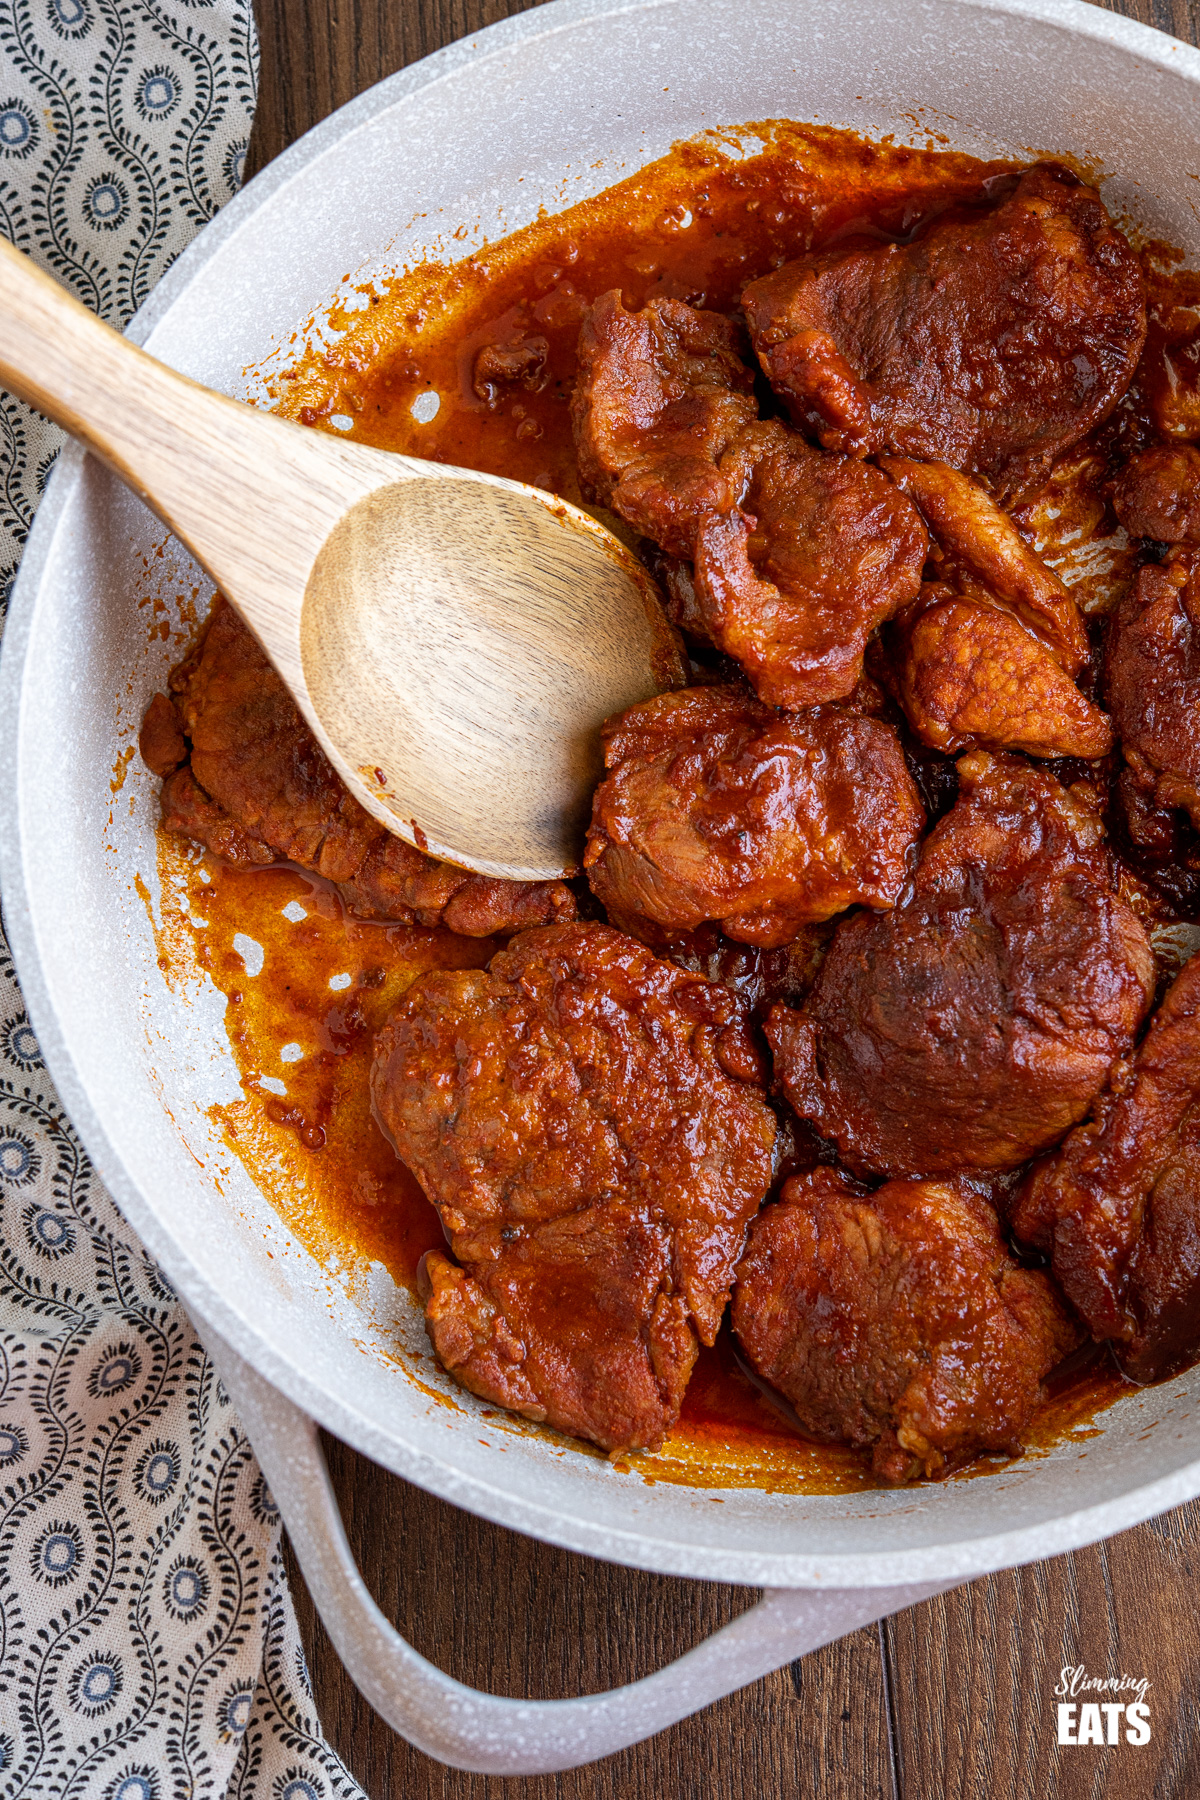 stove top bbq pork in pan with wooden spoon